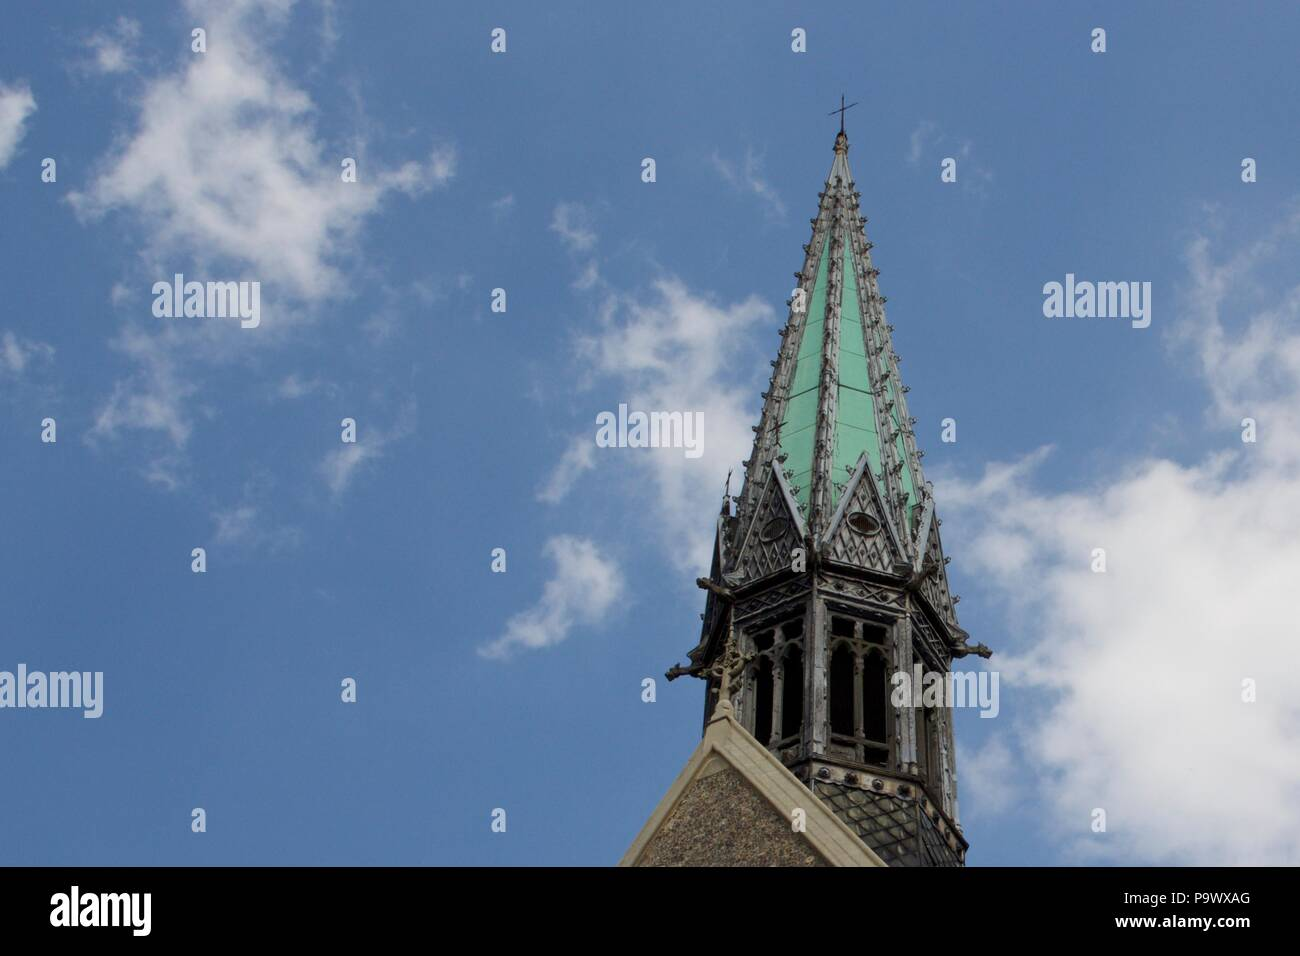 The Harrow School Chapel featuring a green Church Spire. It is a grade II listed building built 1854-57 on High Street, Harrow-On-The-Hill - Stock Image